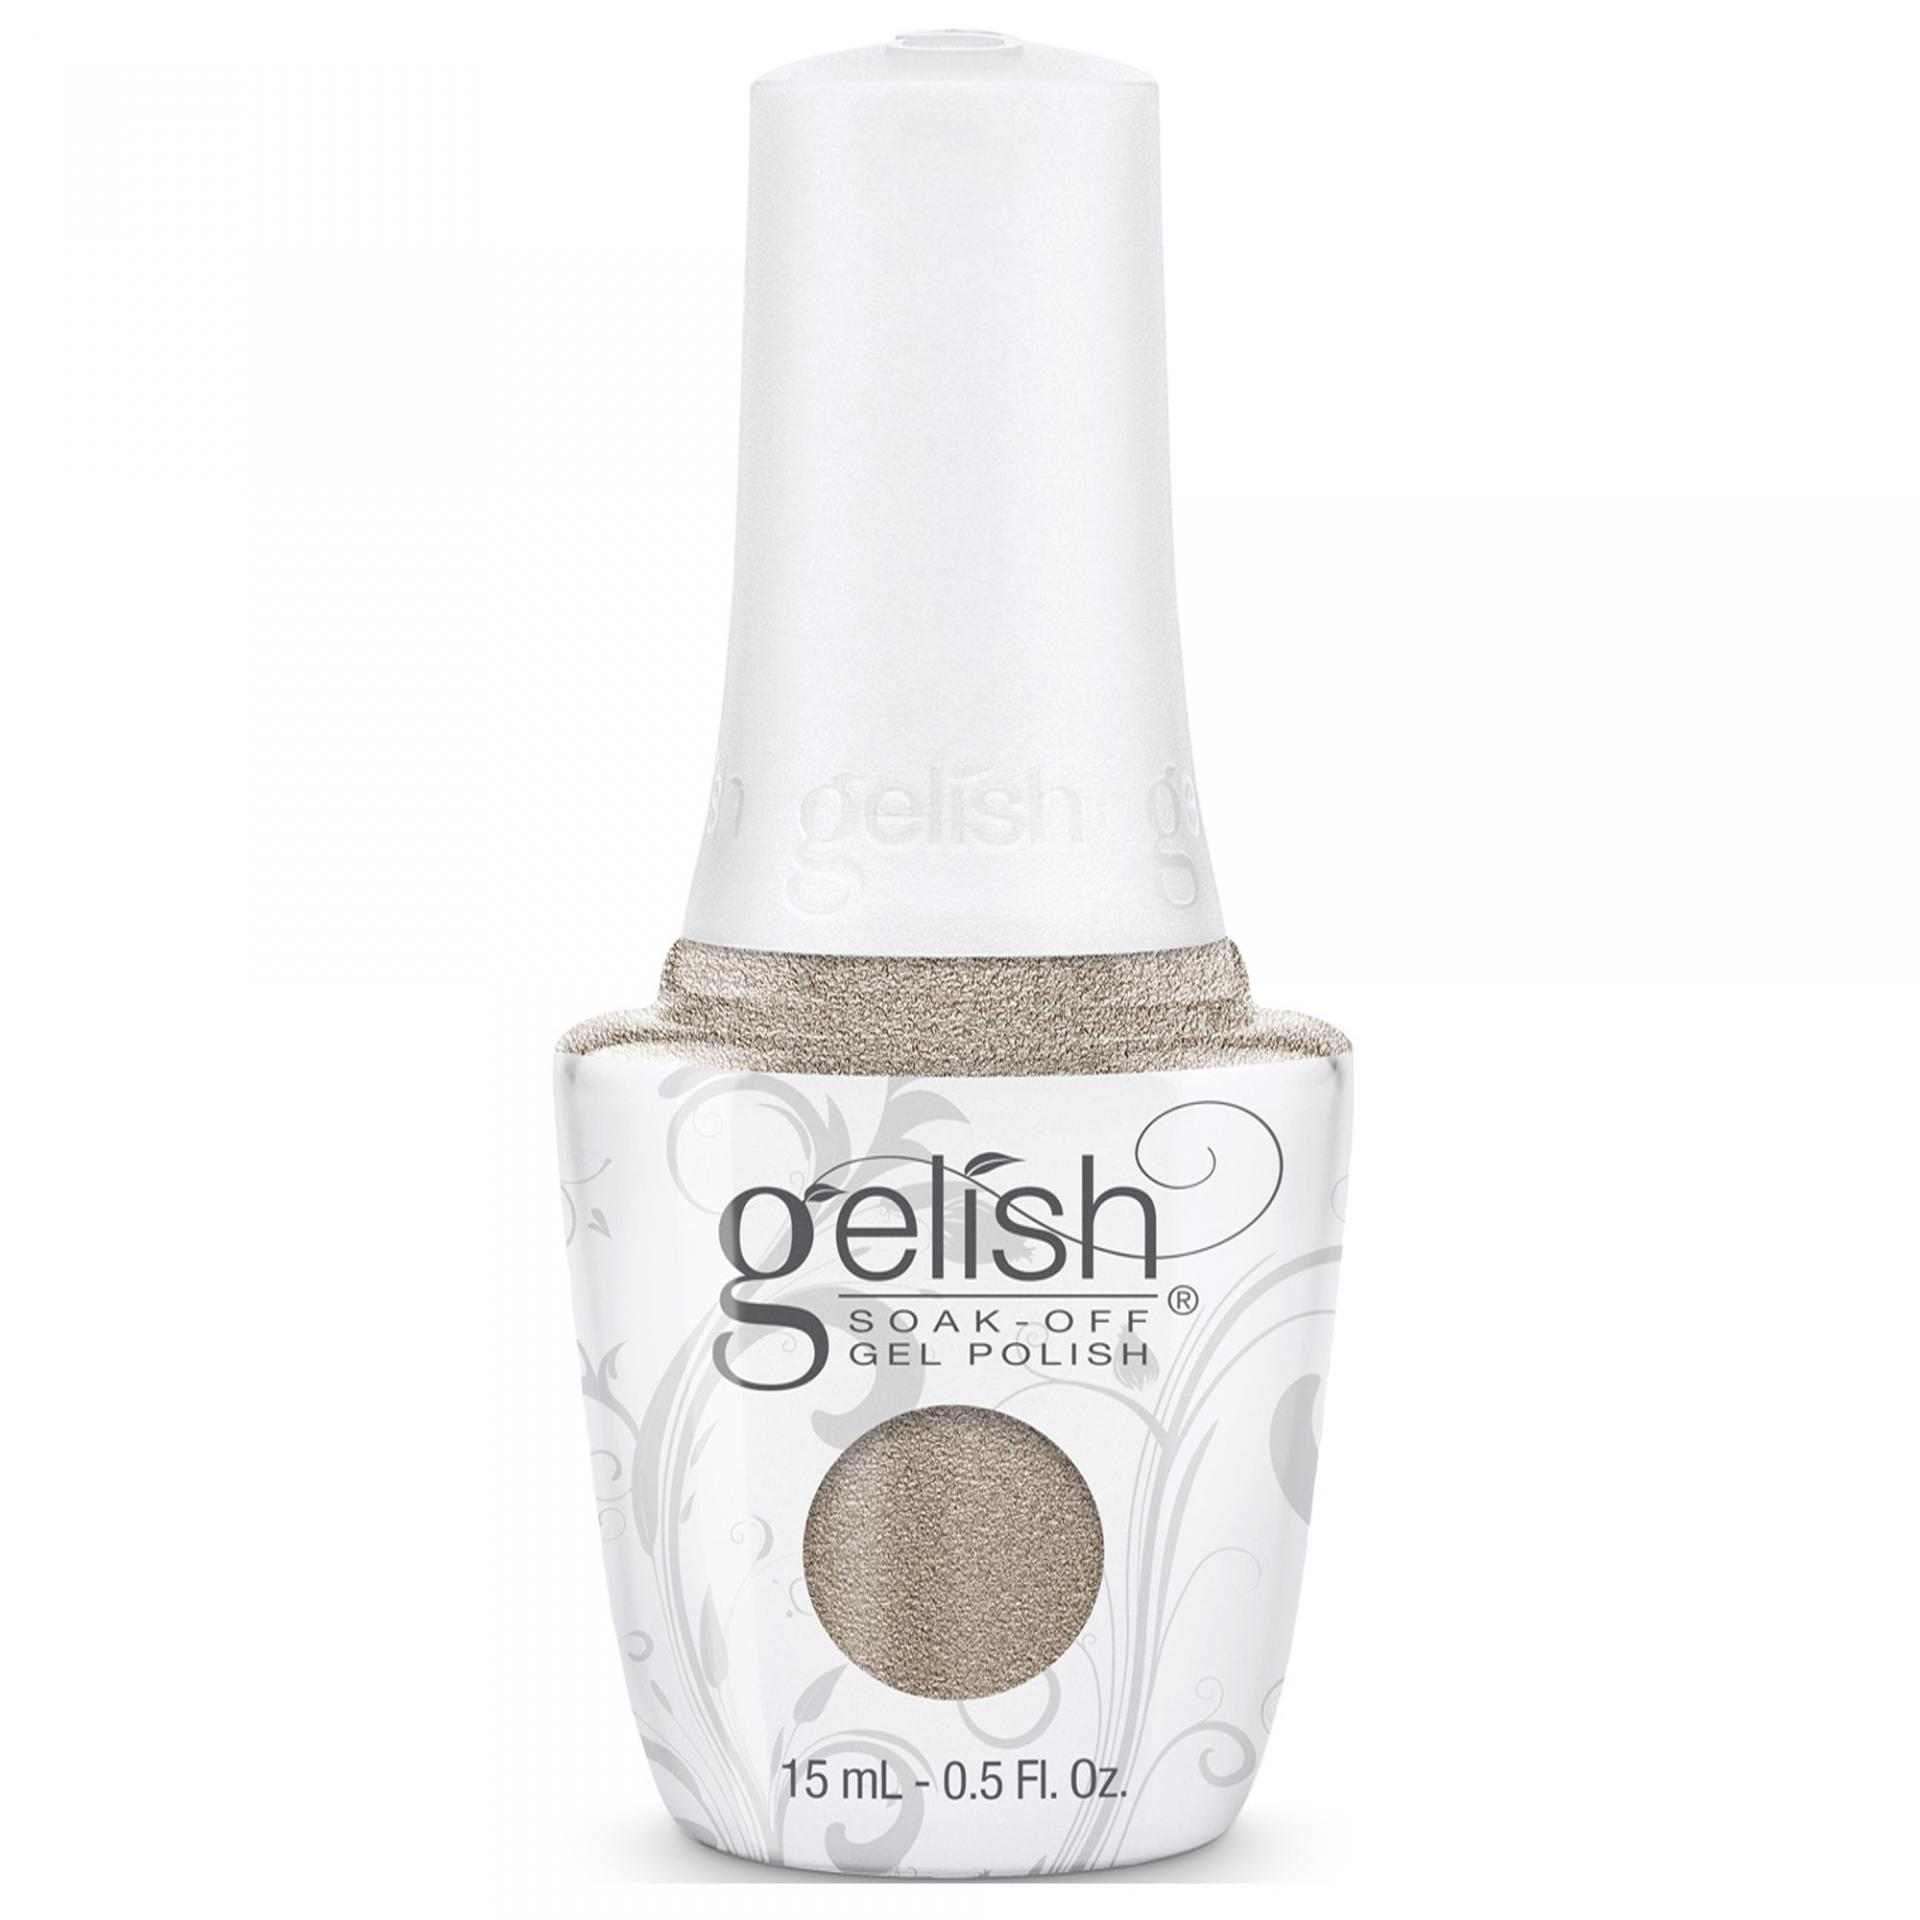 Gelish forever fabulous 2018 gel polish collection ice or no dice 15ml 1110333 p25751 100380 zoom